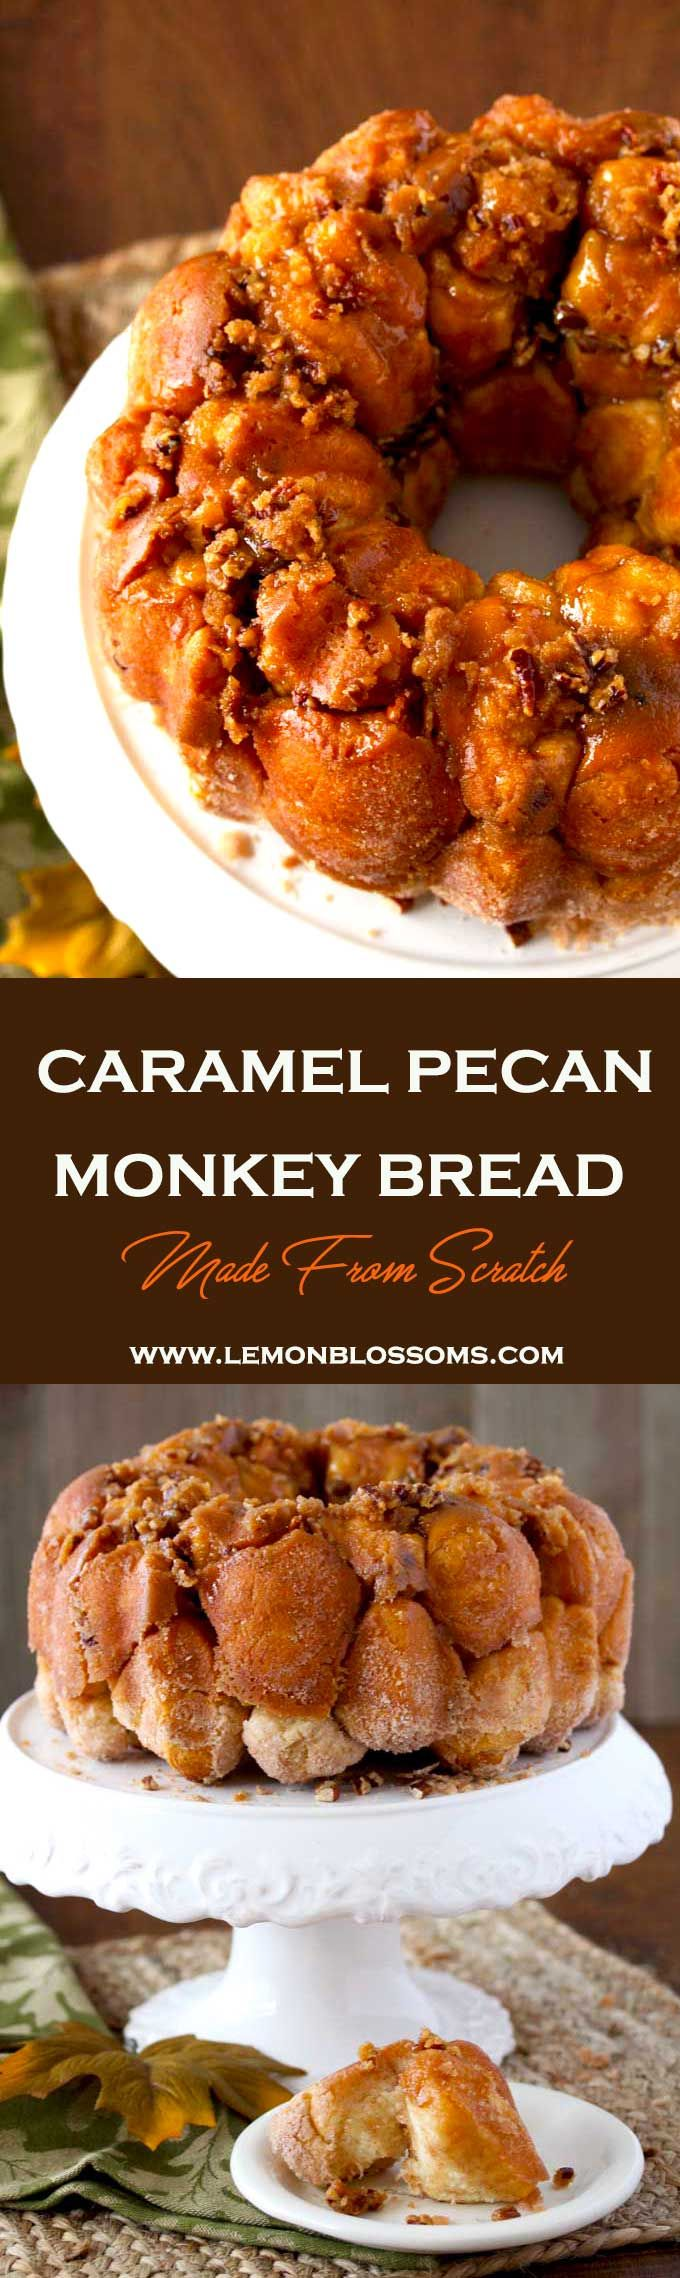 This homemade Caramel Pecan Monkey Bread is chewy, sweet, sticky and made from scratch! Cinnamon sugar dough balls bake in gooey caramel-pecan resulting in a delectable treat! via @lmnblossoms